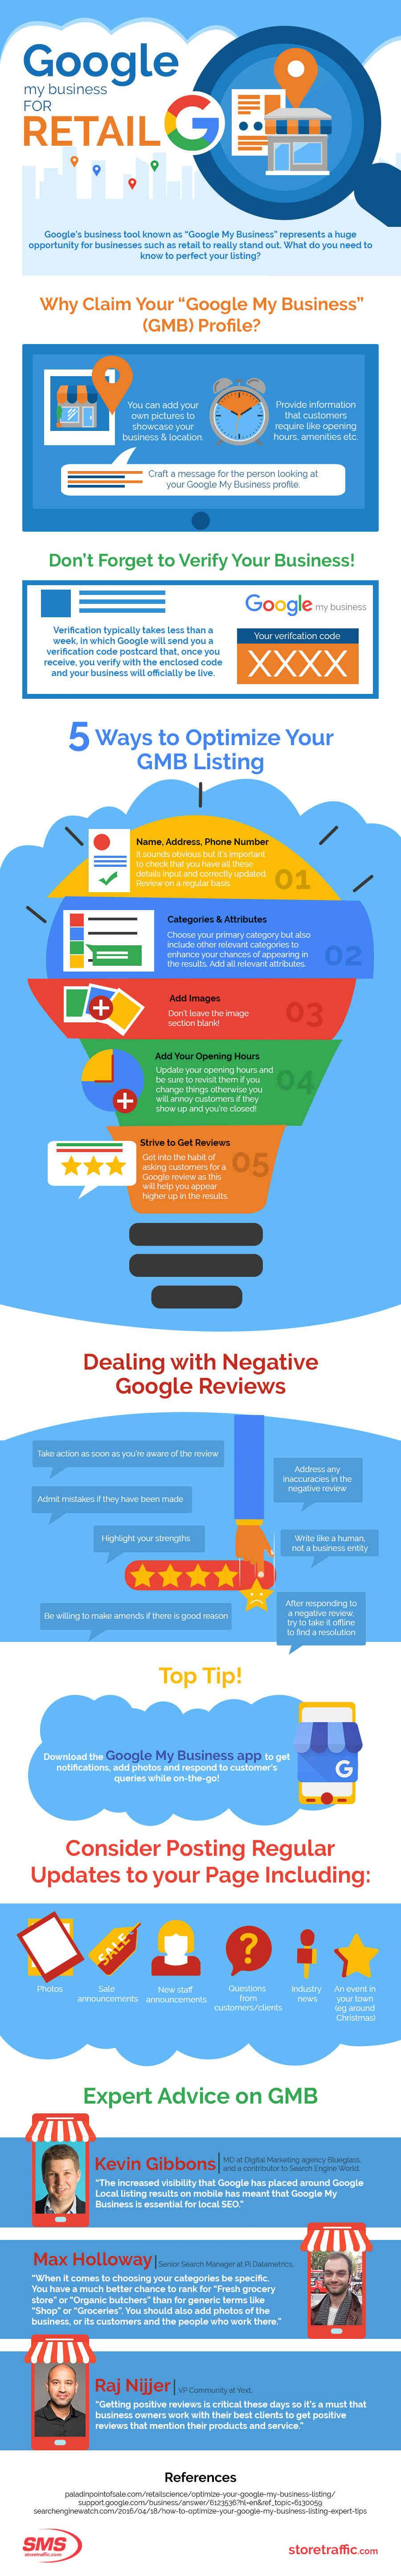 Colourful infographic showing the reasons why Google My Business listing is important to retail business